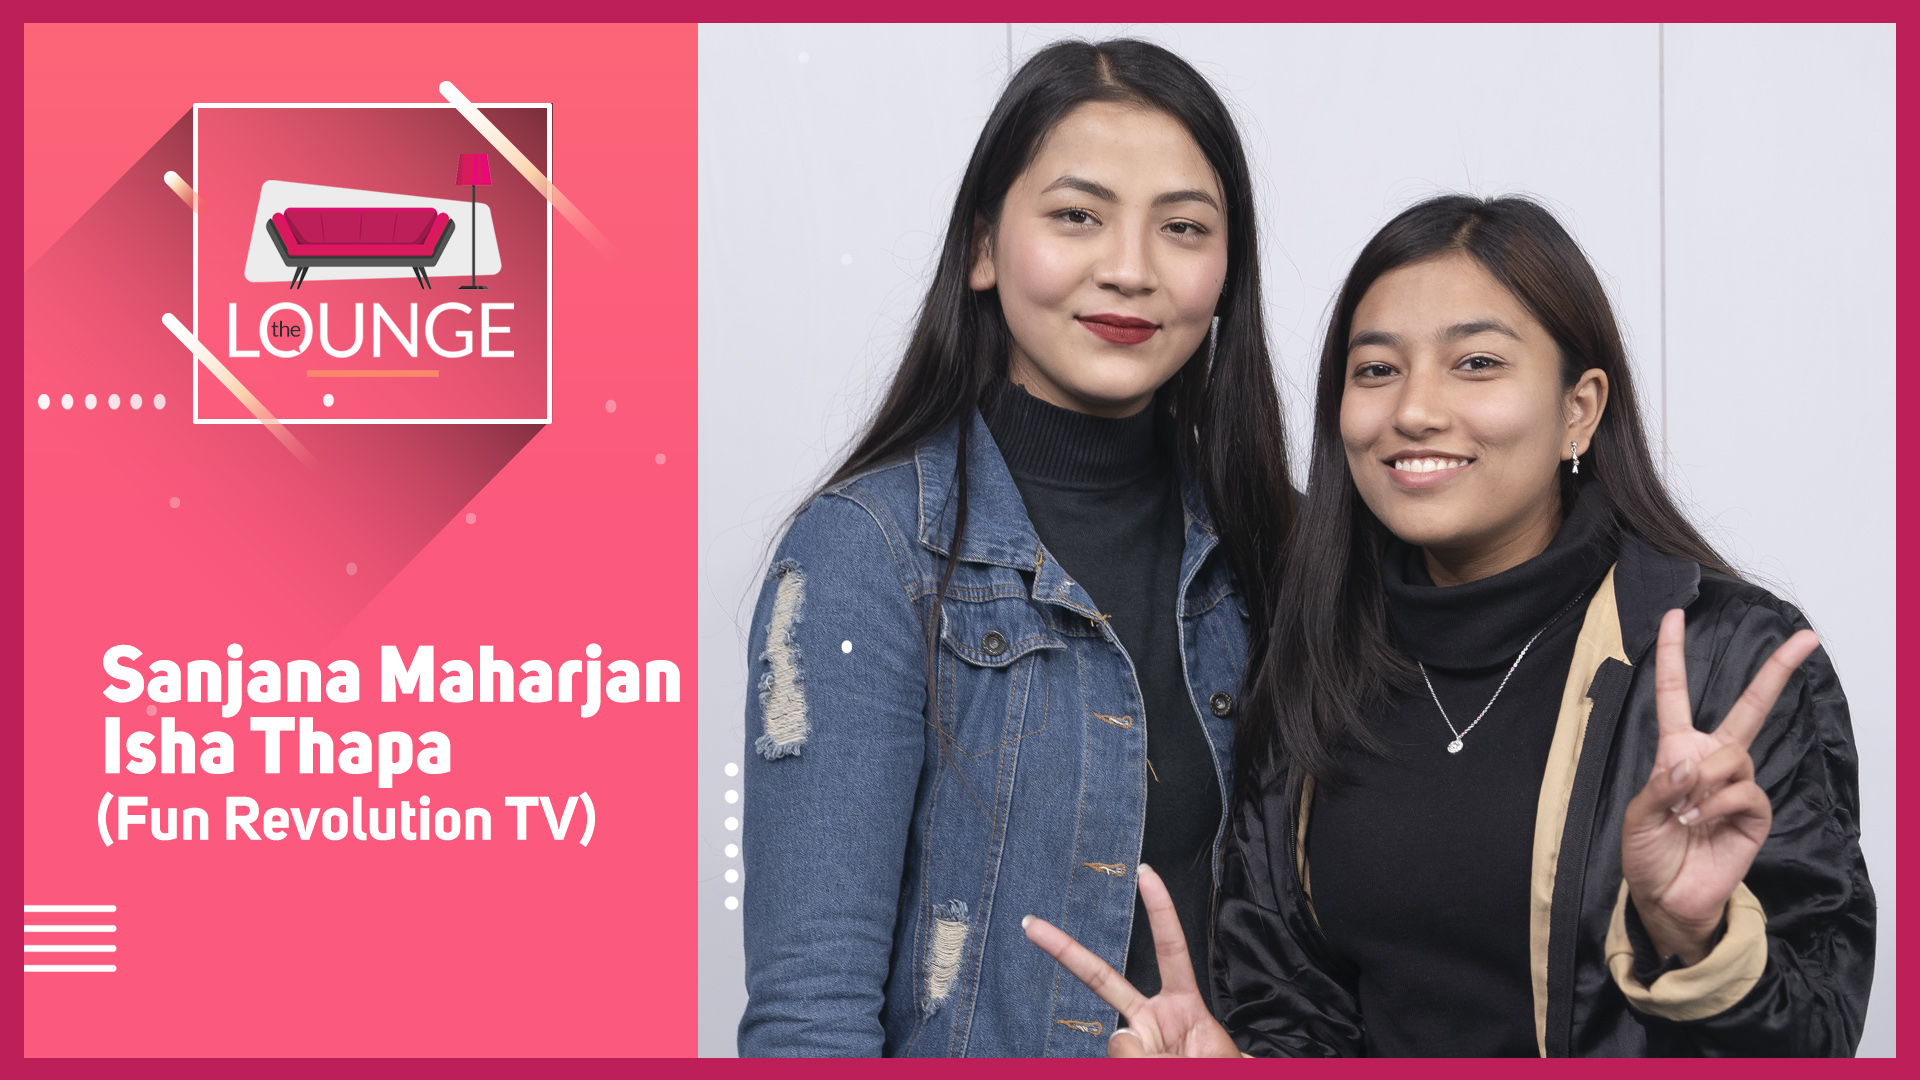 Revolutionary Ladies / Fun Revolution TV | The Lounge with Jai Pradhan